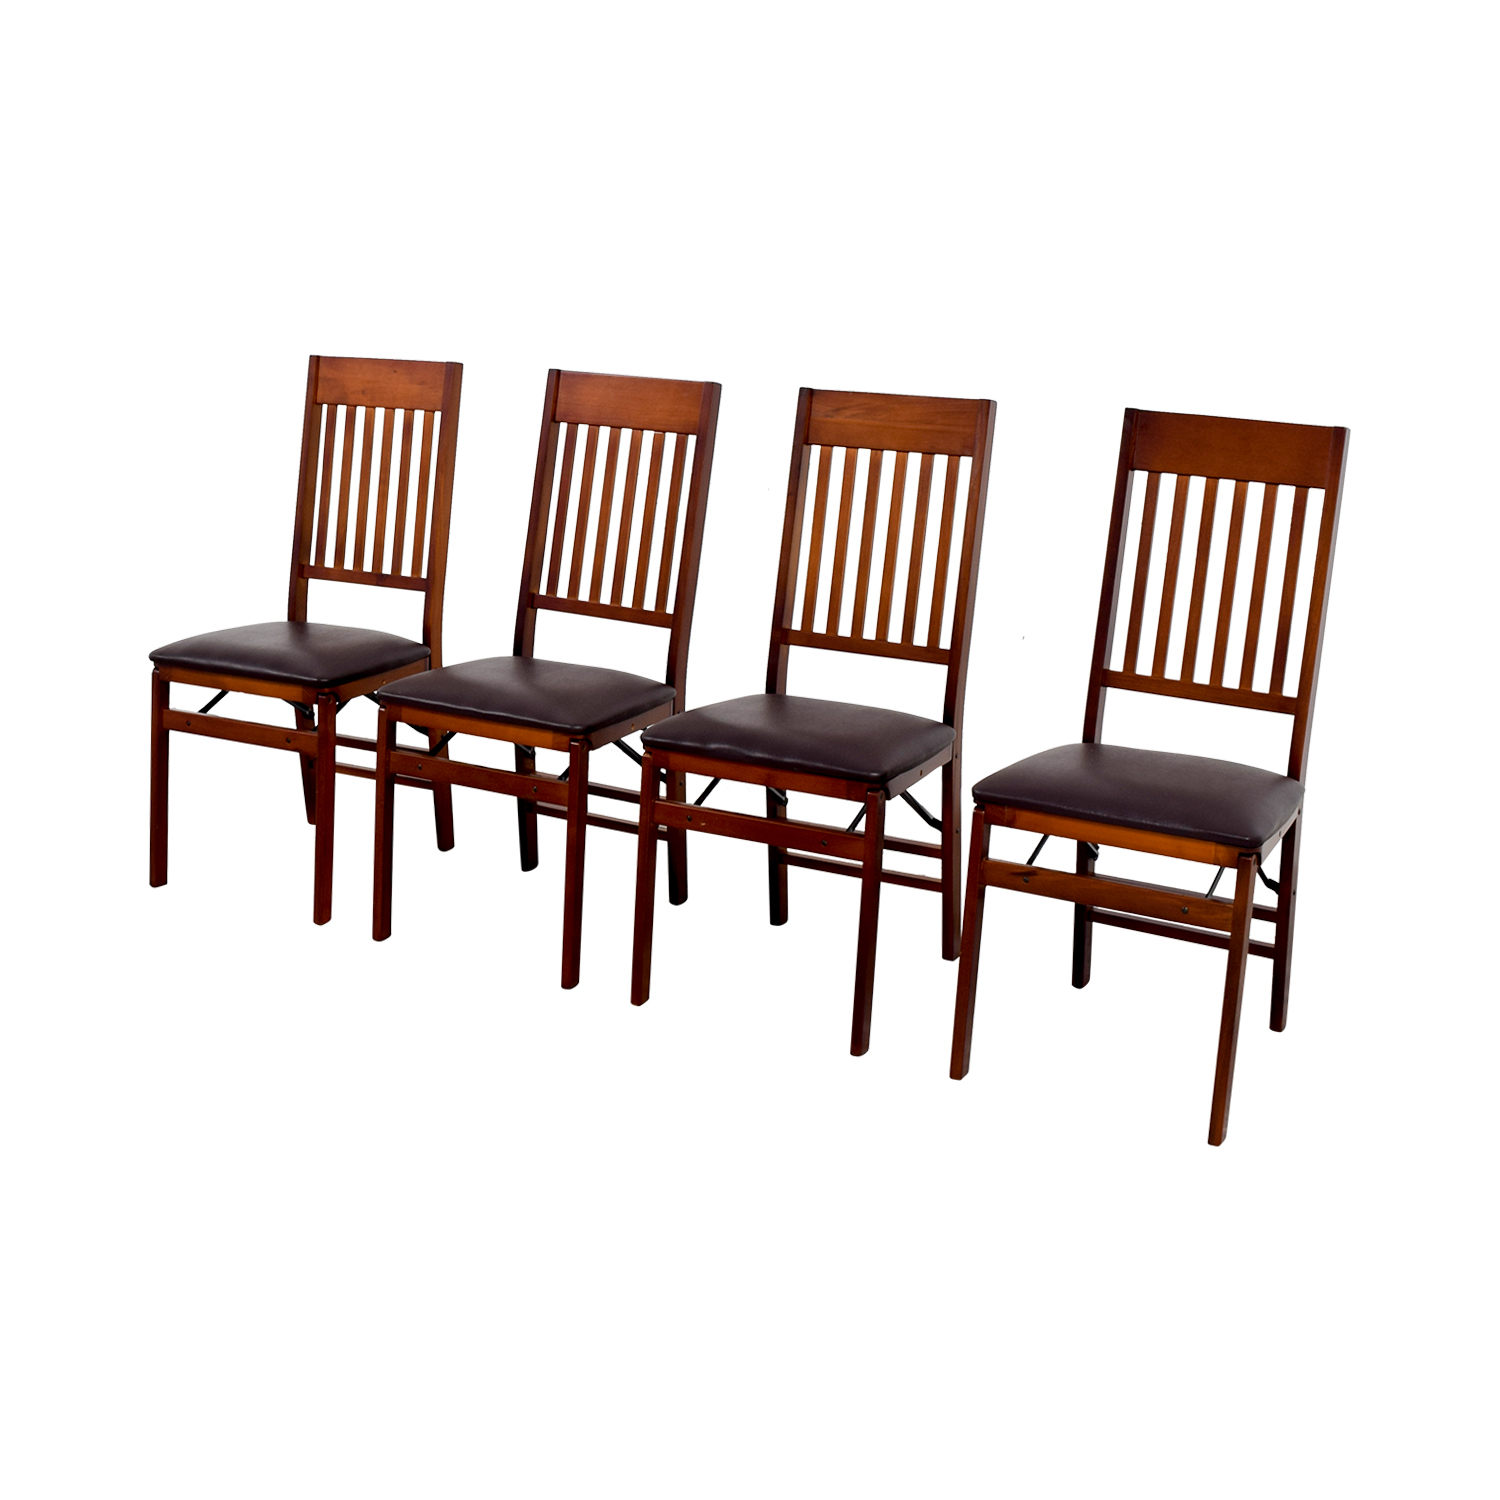 bed bath beyond chairs swing chair with stand india 40 off and brown